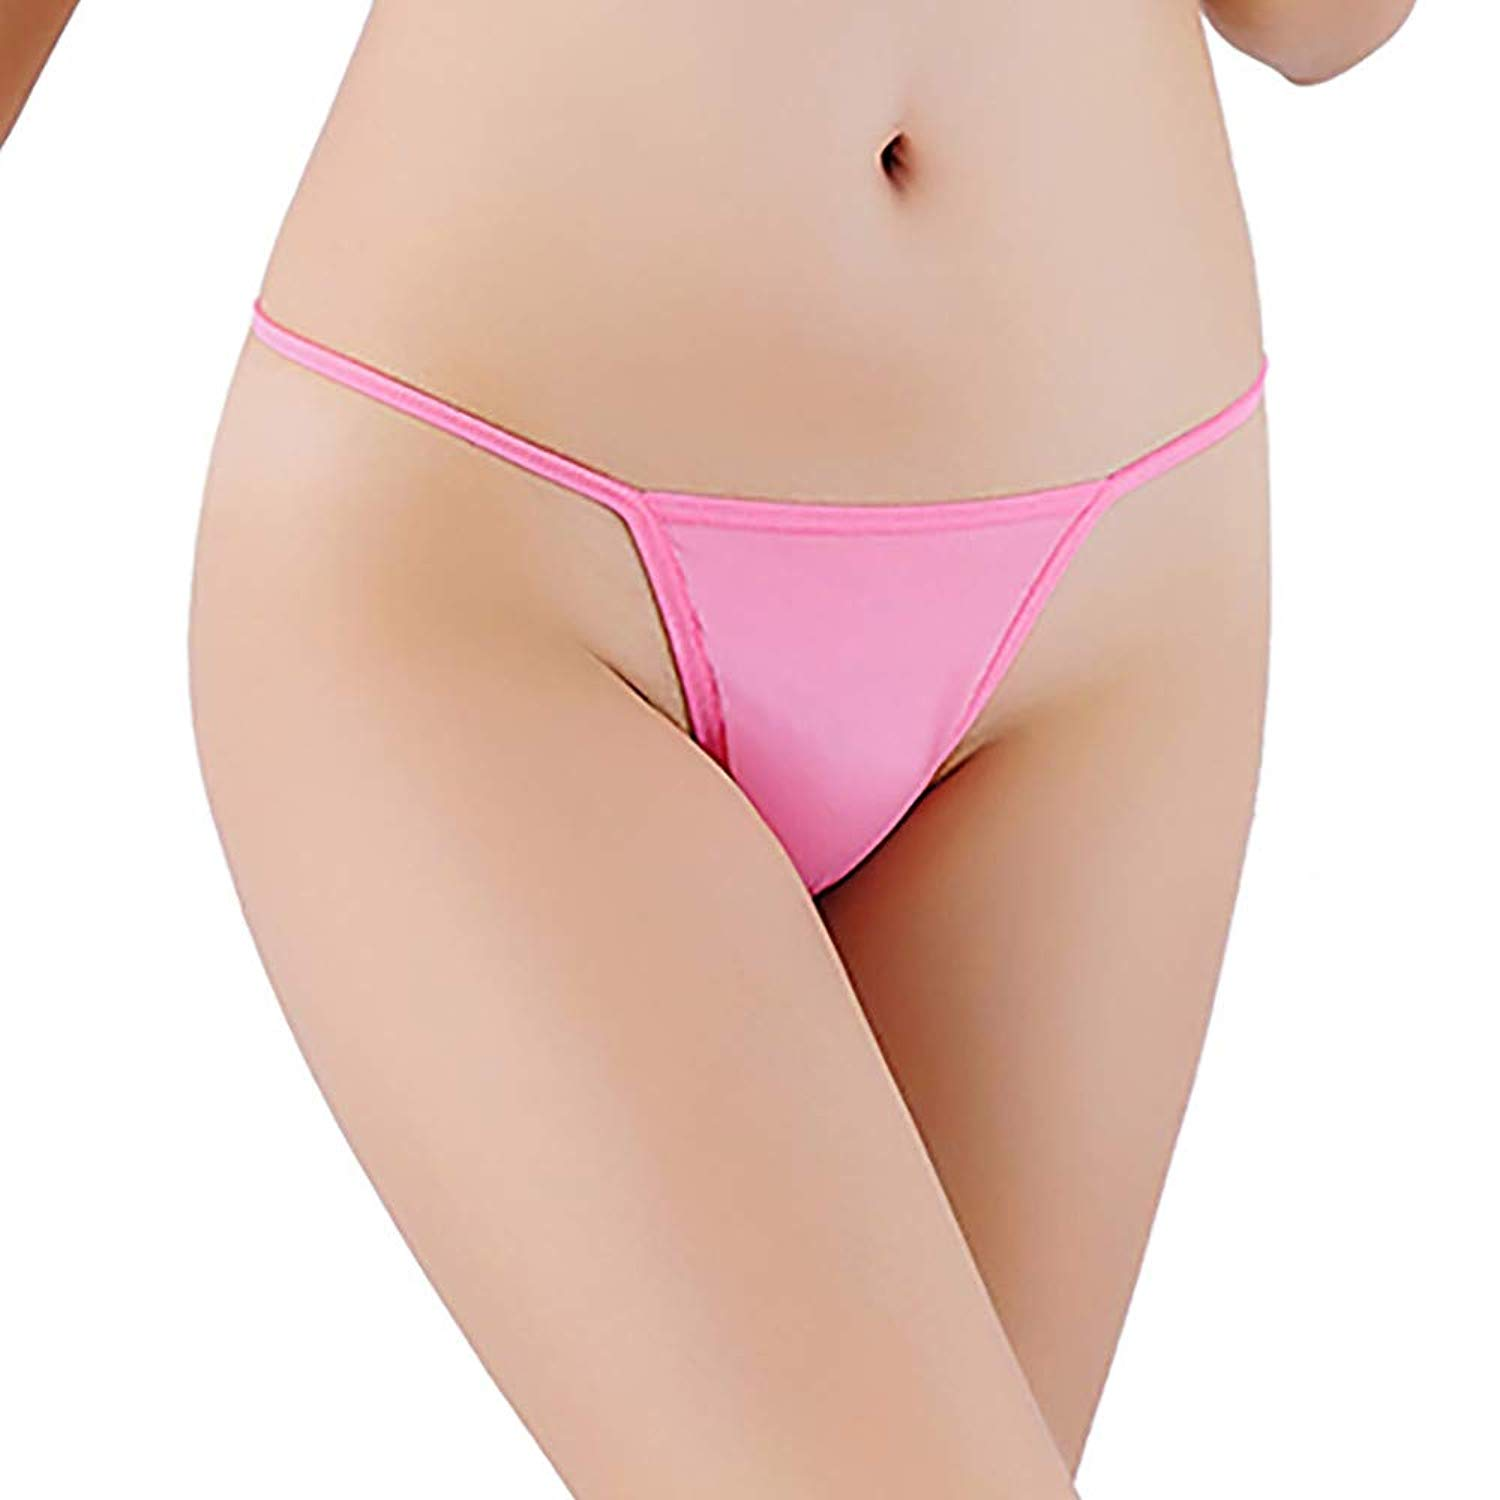 15aaba52c1d Get Quotations · ManxiVoo Womens Low Rise G-String Stretchy Bandage Panties Sexy  Thong T-Back Underwear